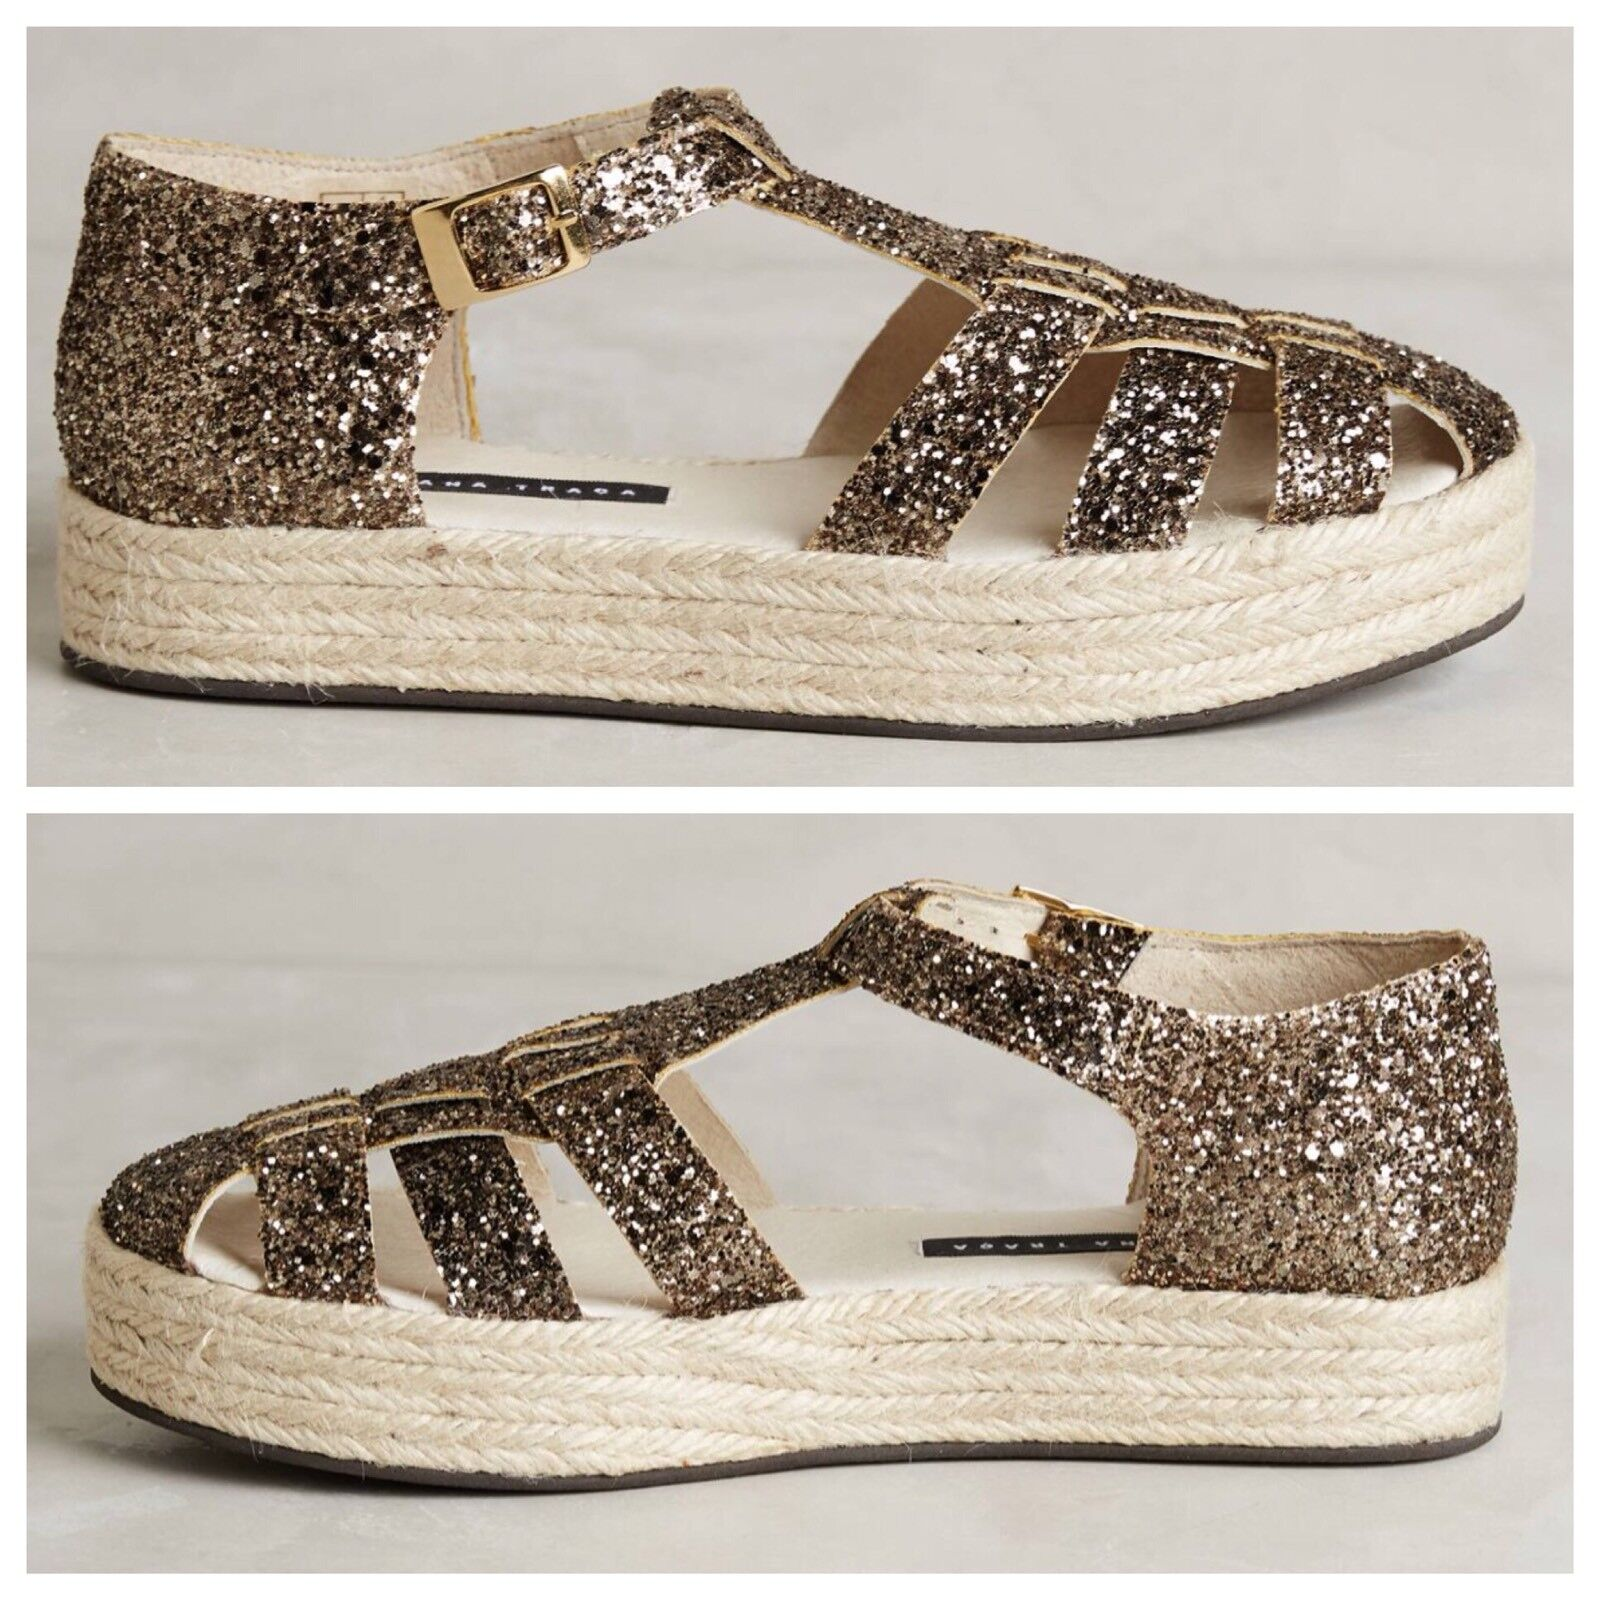 NEW Anthropologie Glitter Flatforms Size Size Size 40 Espadrilles Sandals SusanaTraca 590104